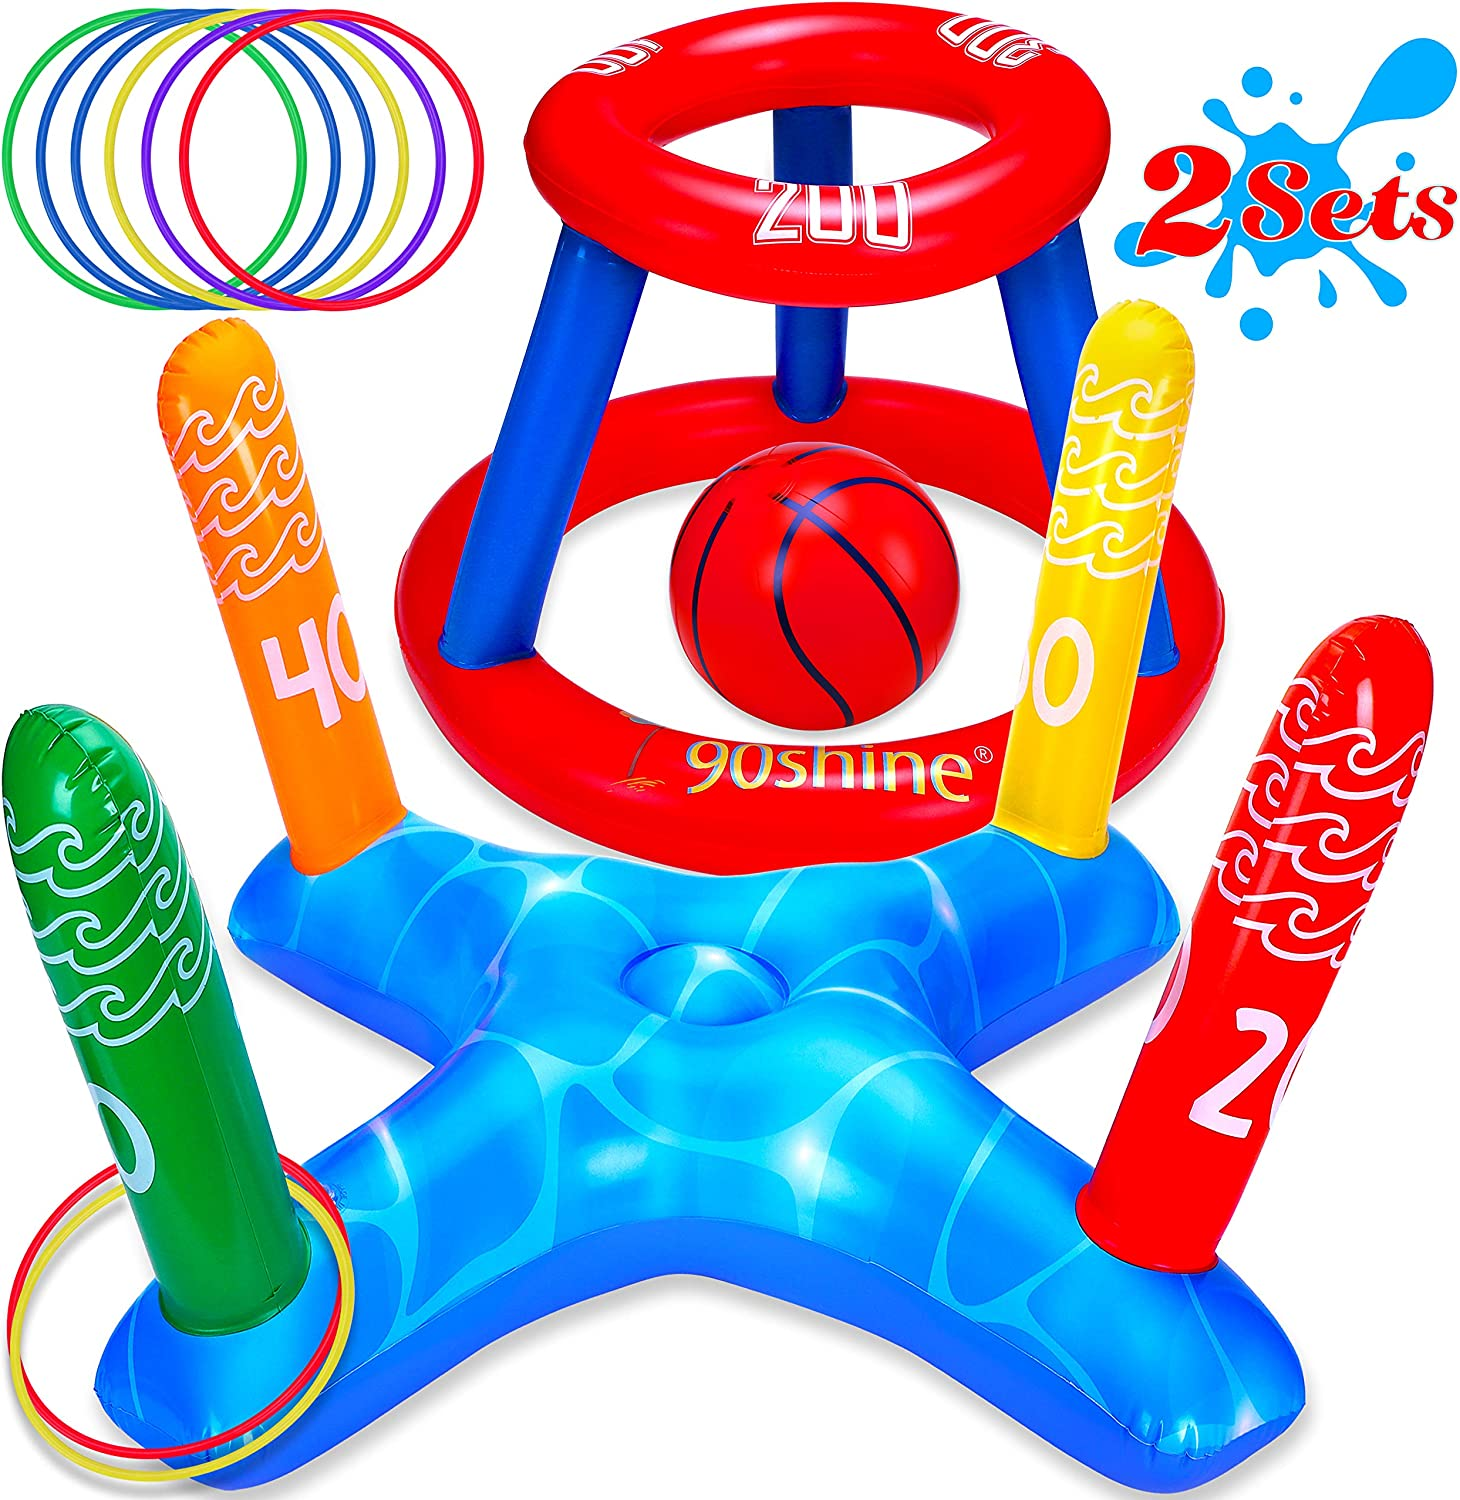 90shine Pool Toys Games Set - Floating Basketball Hoop&Inflatable Ring Toss for Kids Adults Family Swimming Water Sport Fun Floats Accessories